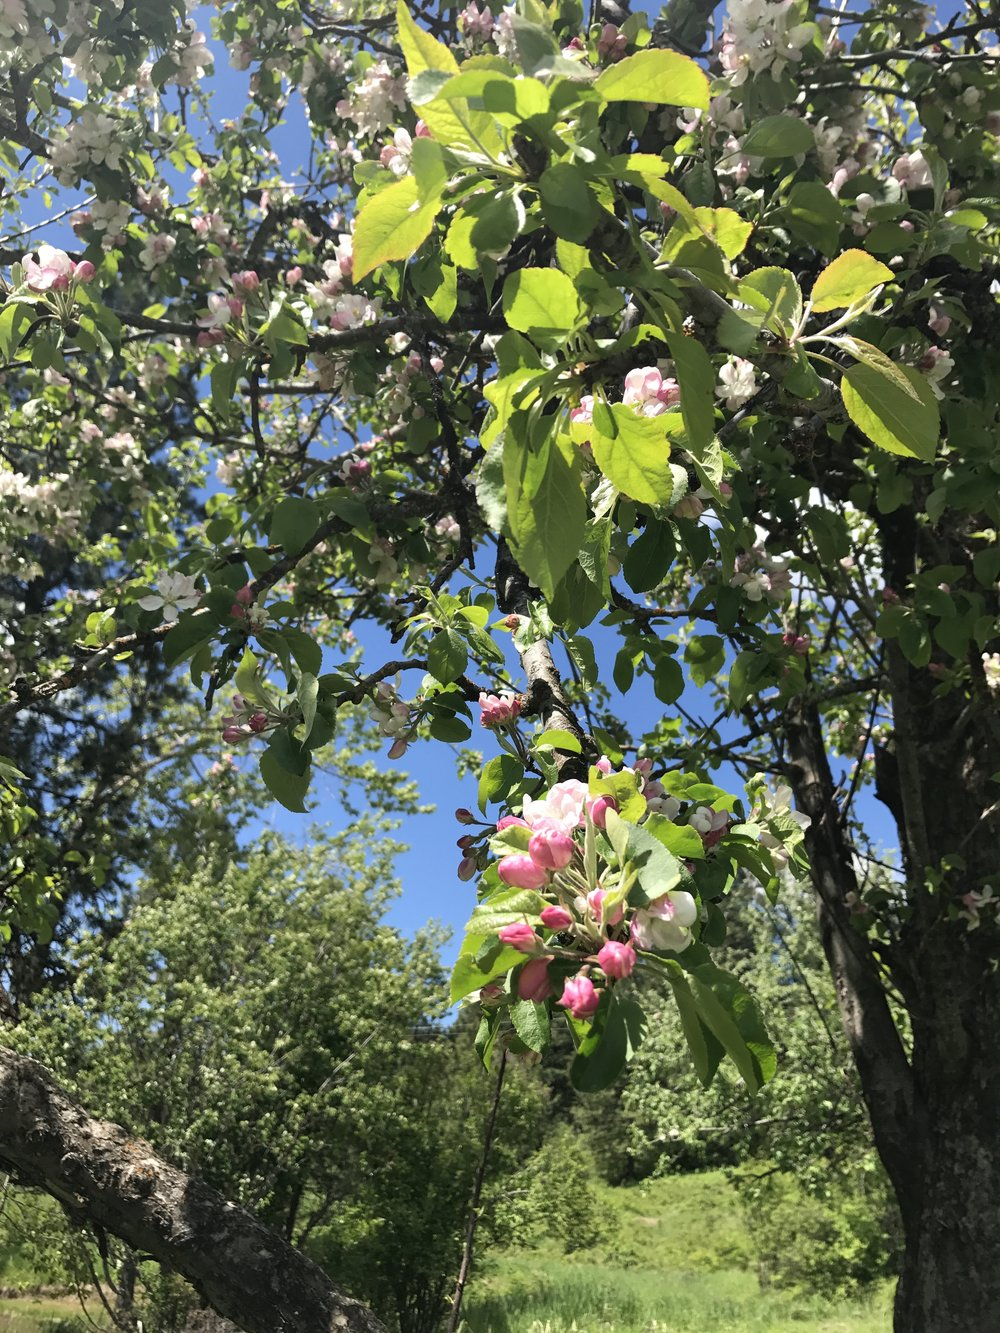 Apple tree in bloom. 21 May 2017.